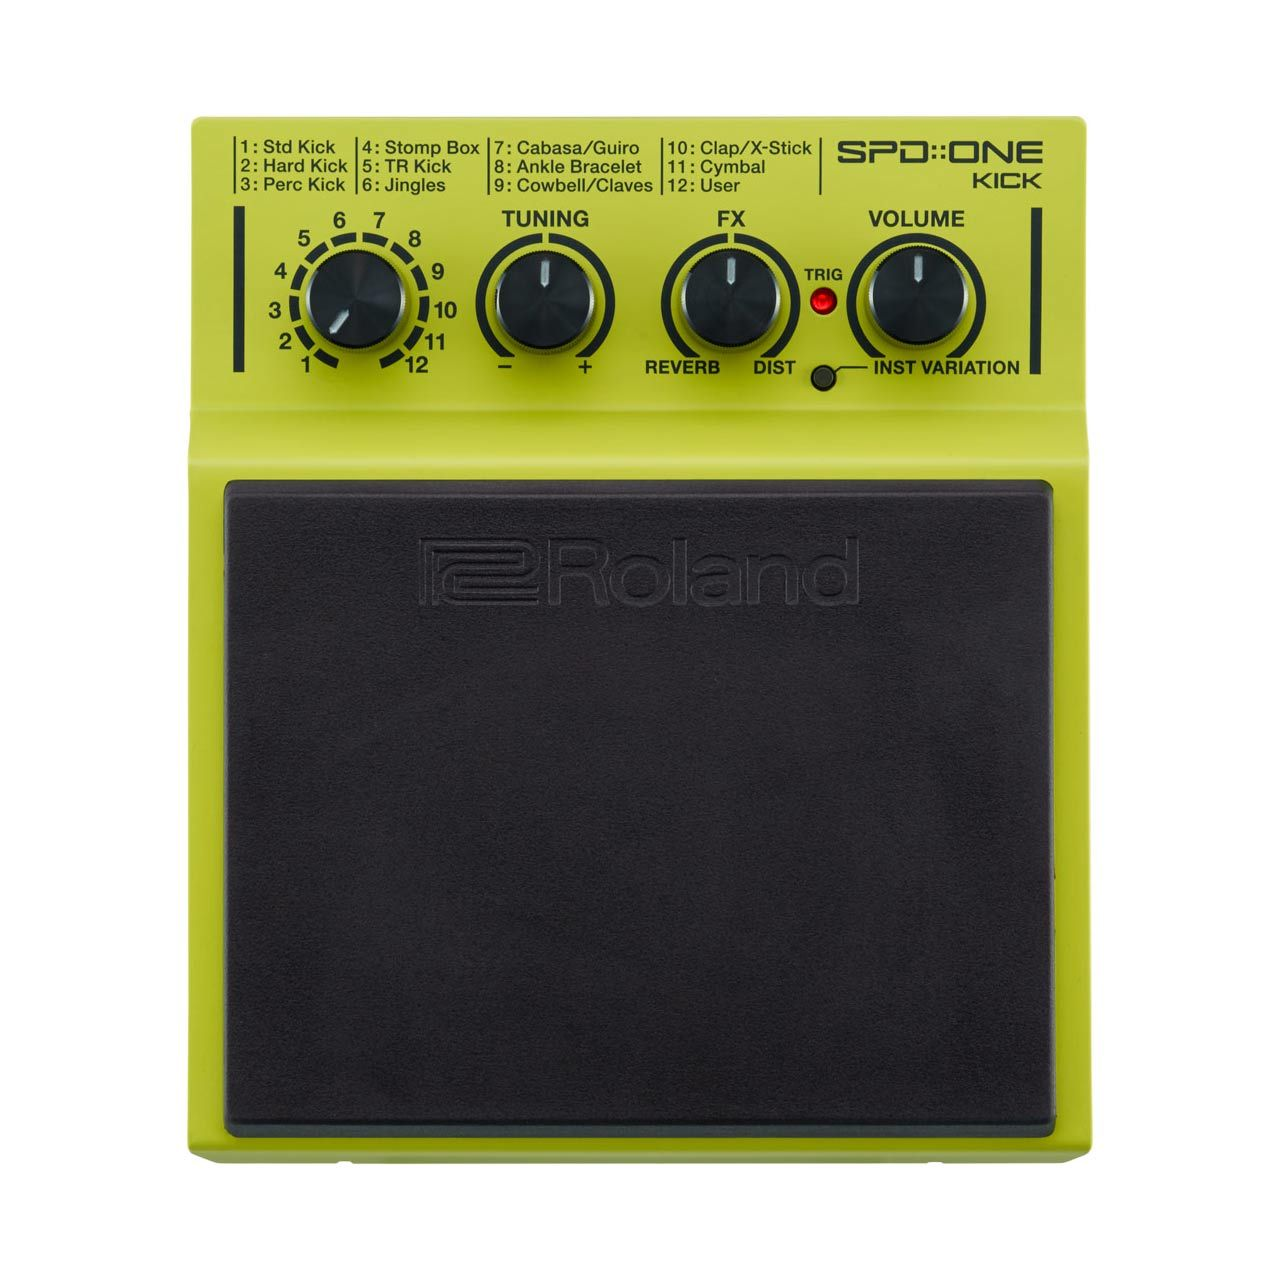 Percussion Controllers - Roland SPD ONE Kick Percussion Pad